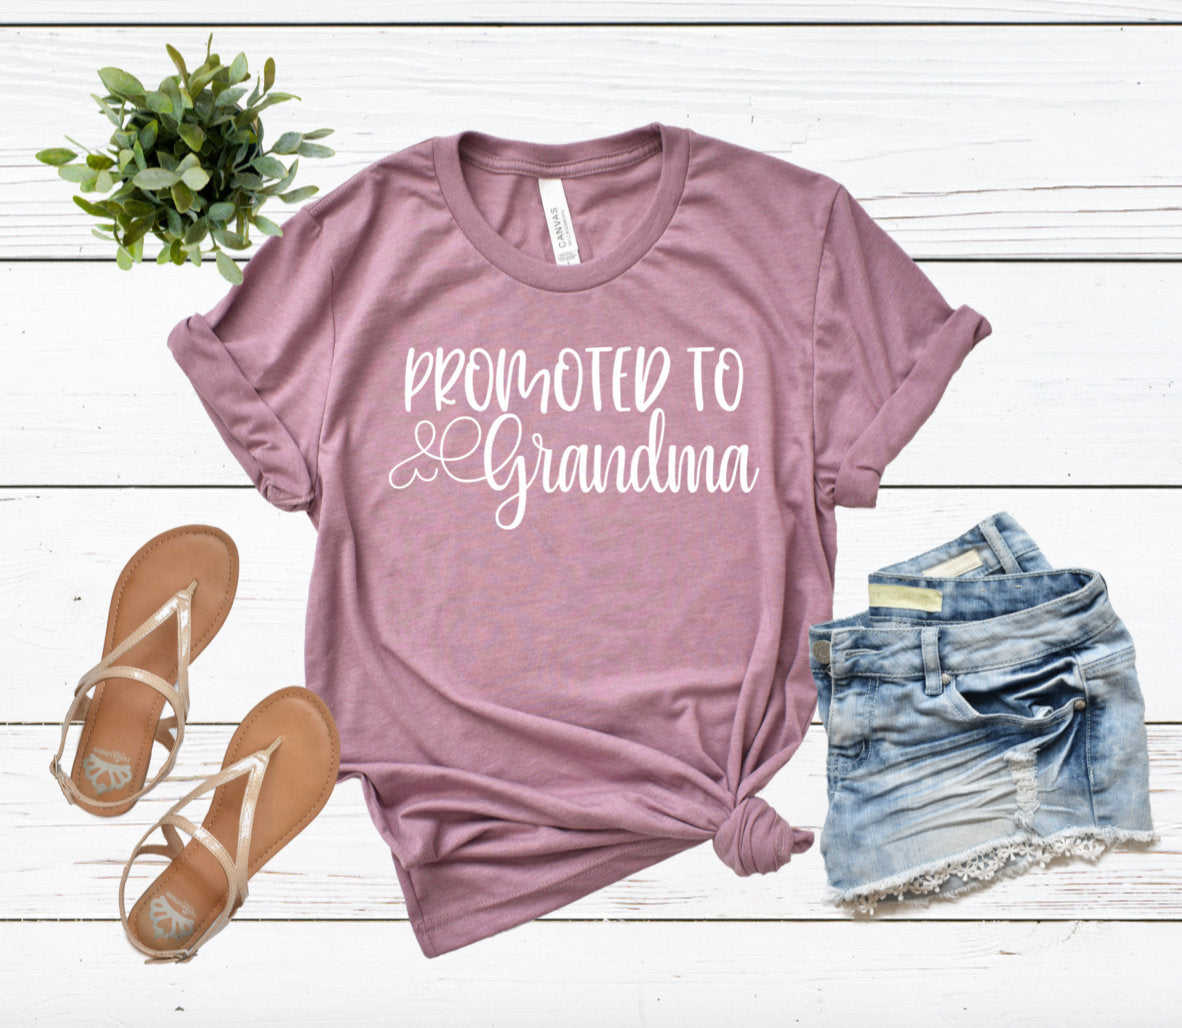 Promoted to Grandma Heather Orchid T-shirt - Grandma Shirt - Pregnancy Announcement Gift - Grandma To Be